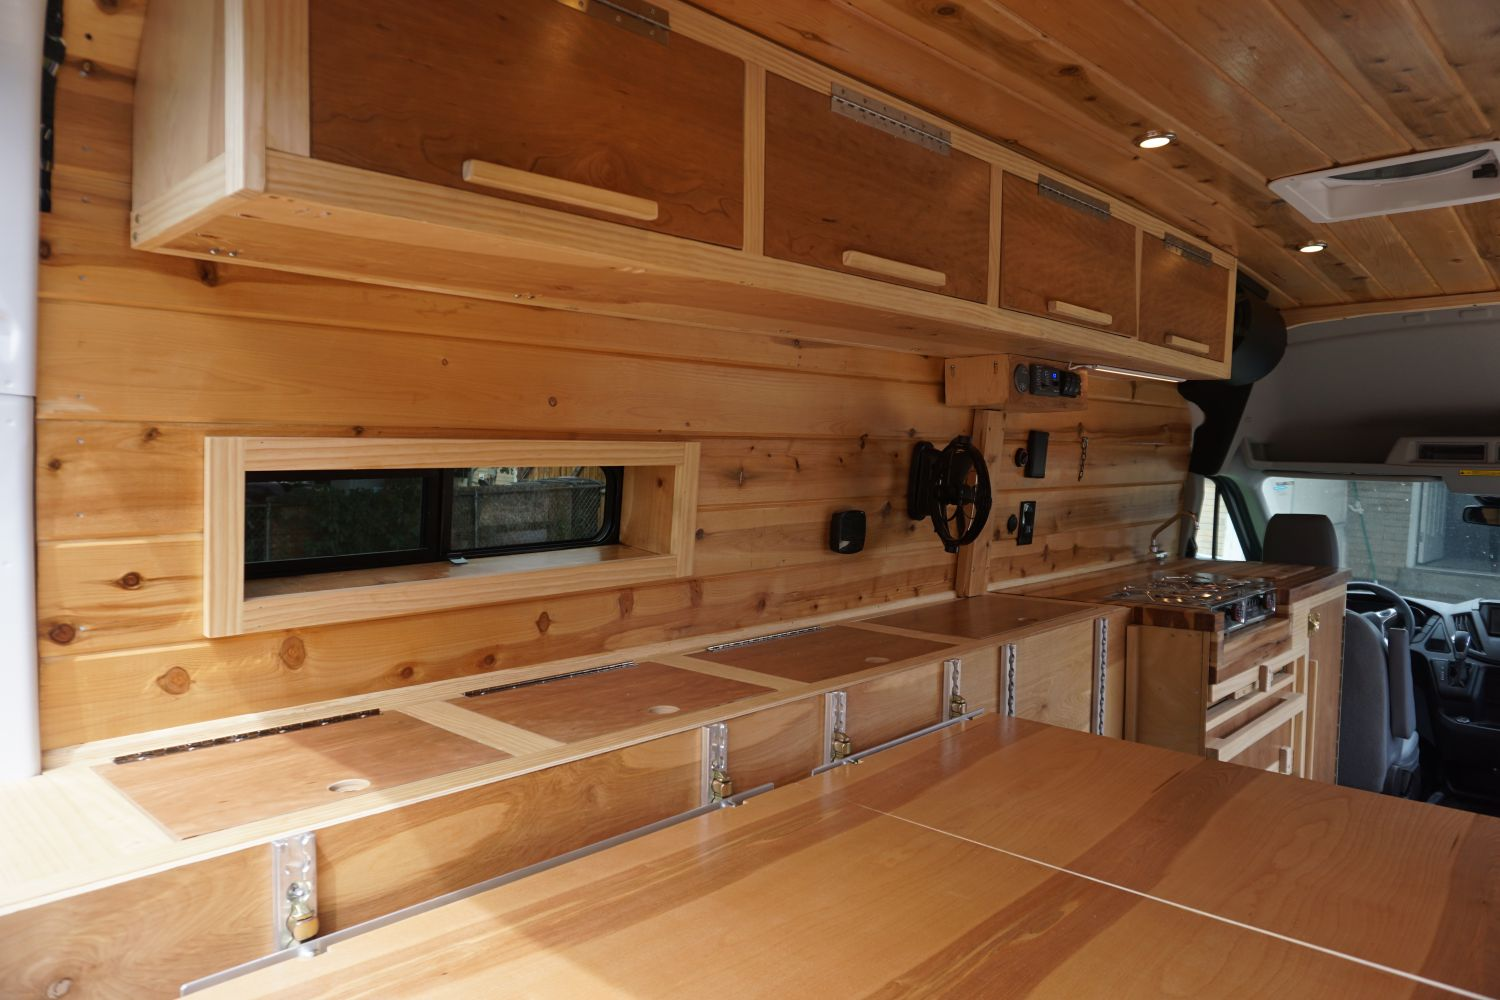 woodwork on ford transit 350 custom camper van conversion in golden, colorado